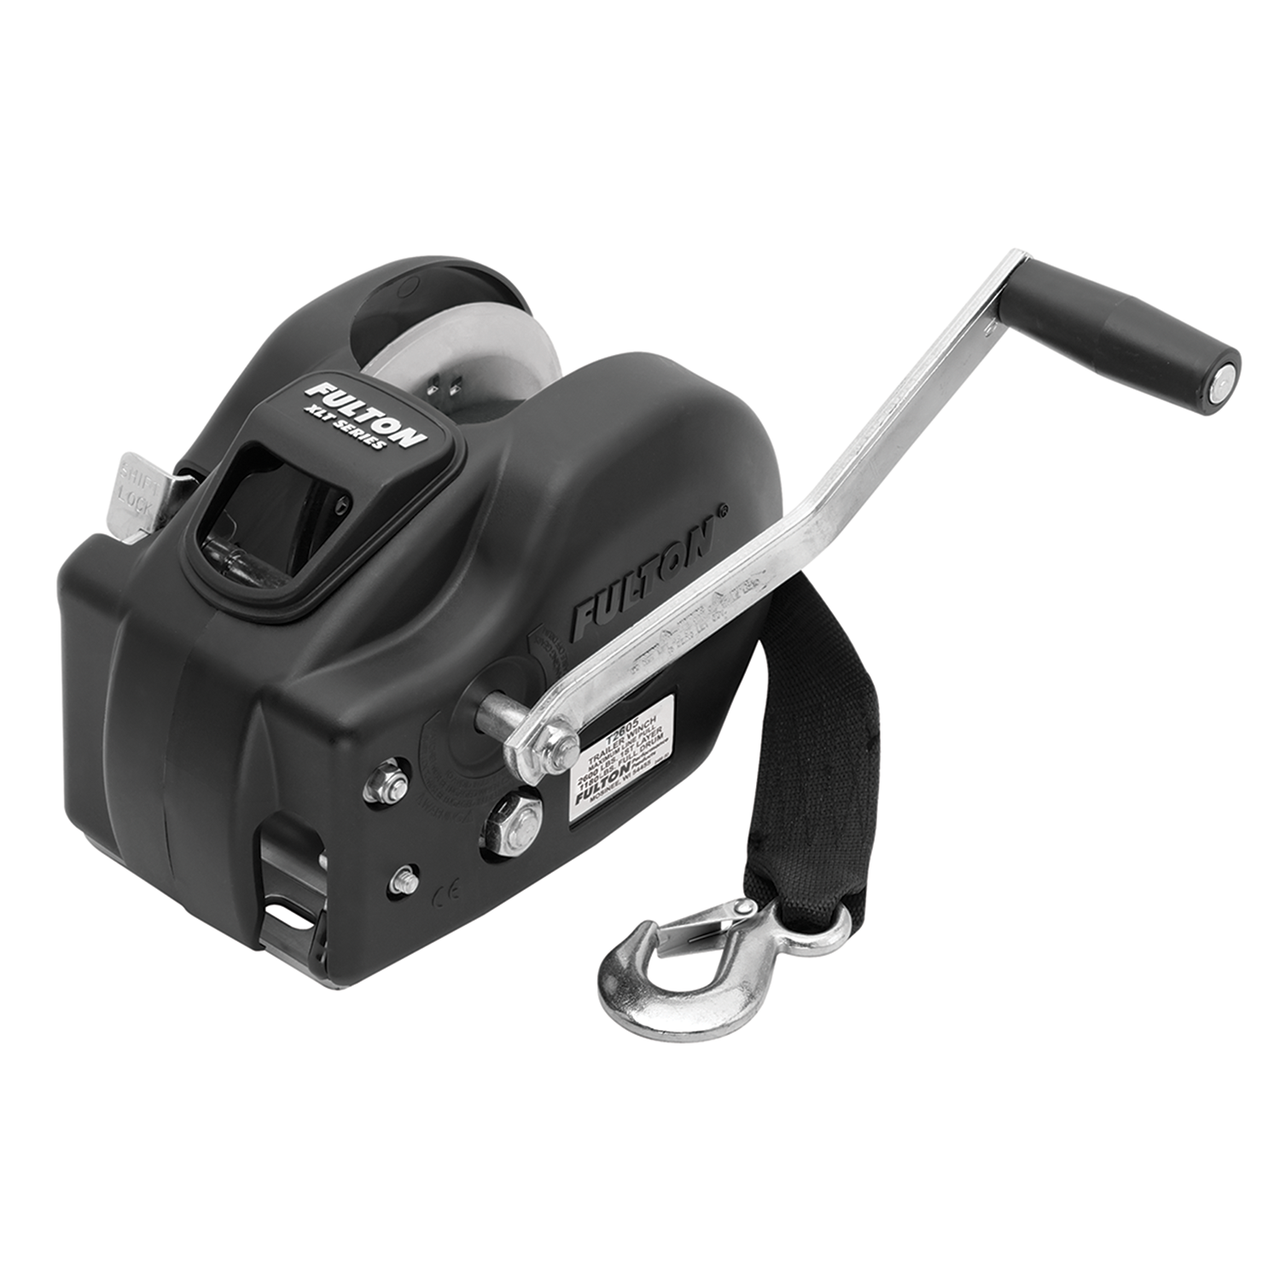 142418 --- Fulton Two Speed Trailer Winch - 2,600 lb Capacity